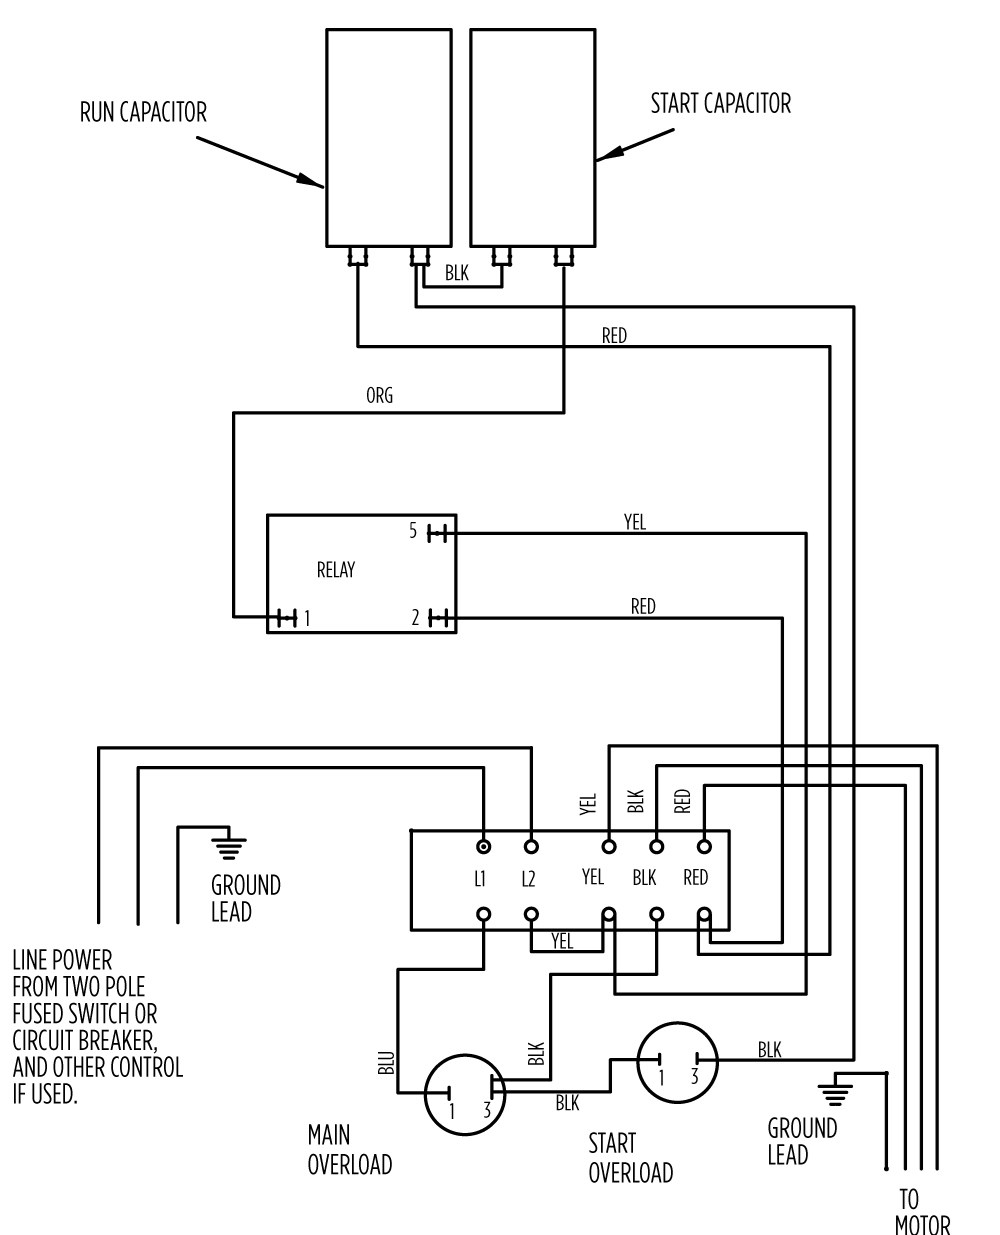 2 hp standard 282 301 8110_aim gallery?format=jpg&quality=80 aim manual page 55 single phase motors and controls motor well pump control box wiring diagram at gsmx.co